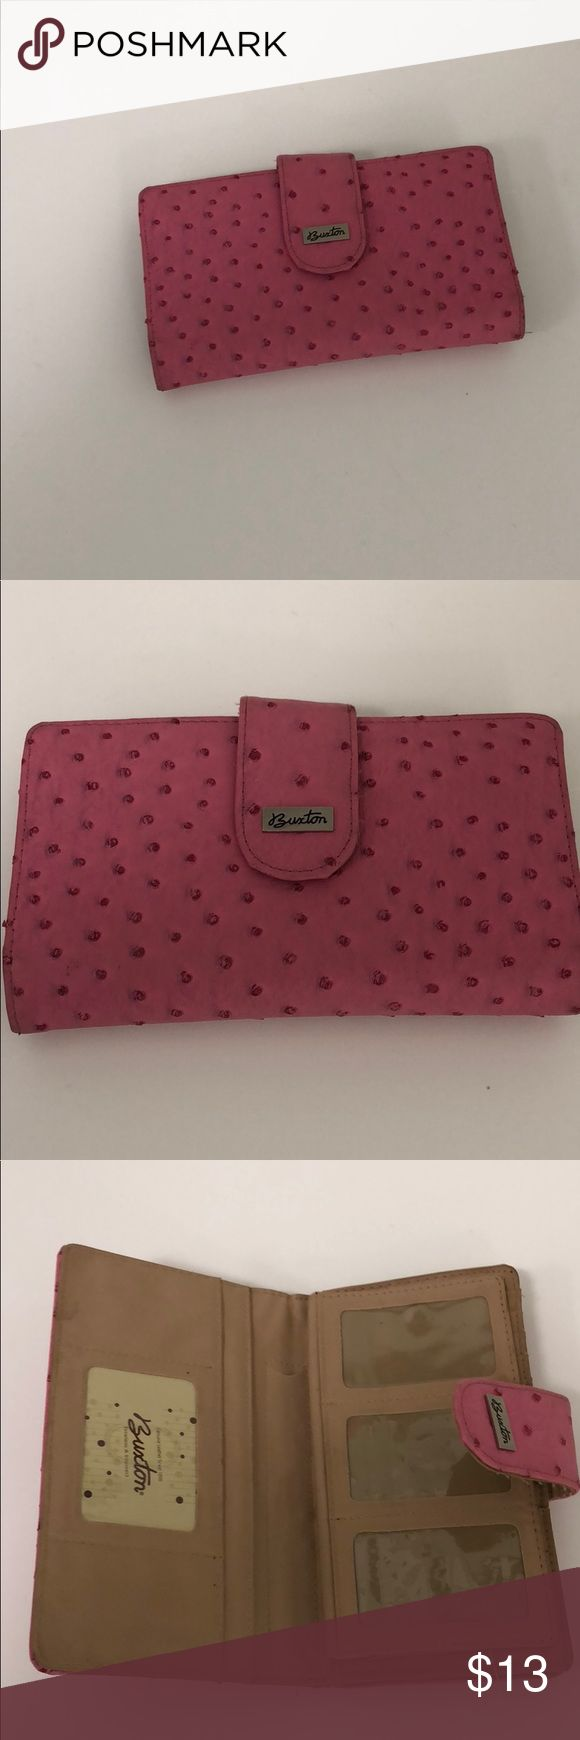 Buxton wallet Buxton pink eel skin like texture ladies wallet. Pretty in pink with all of the pockets and dividers necessary to house all that you desire. Like new condition. Nice find.👍🏾 Buxton Bags Wallets